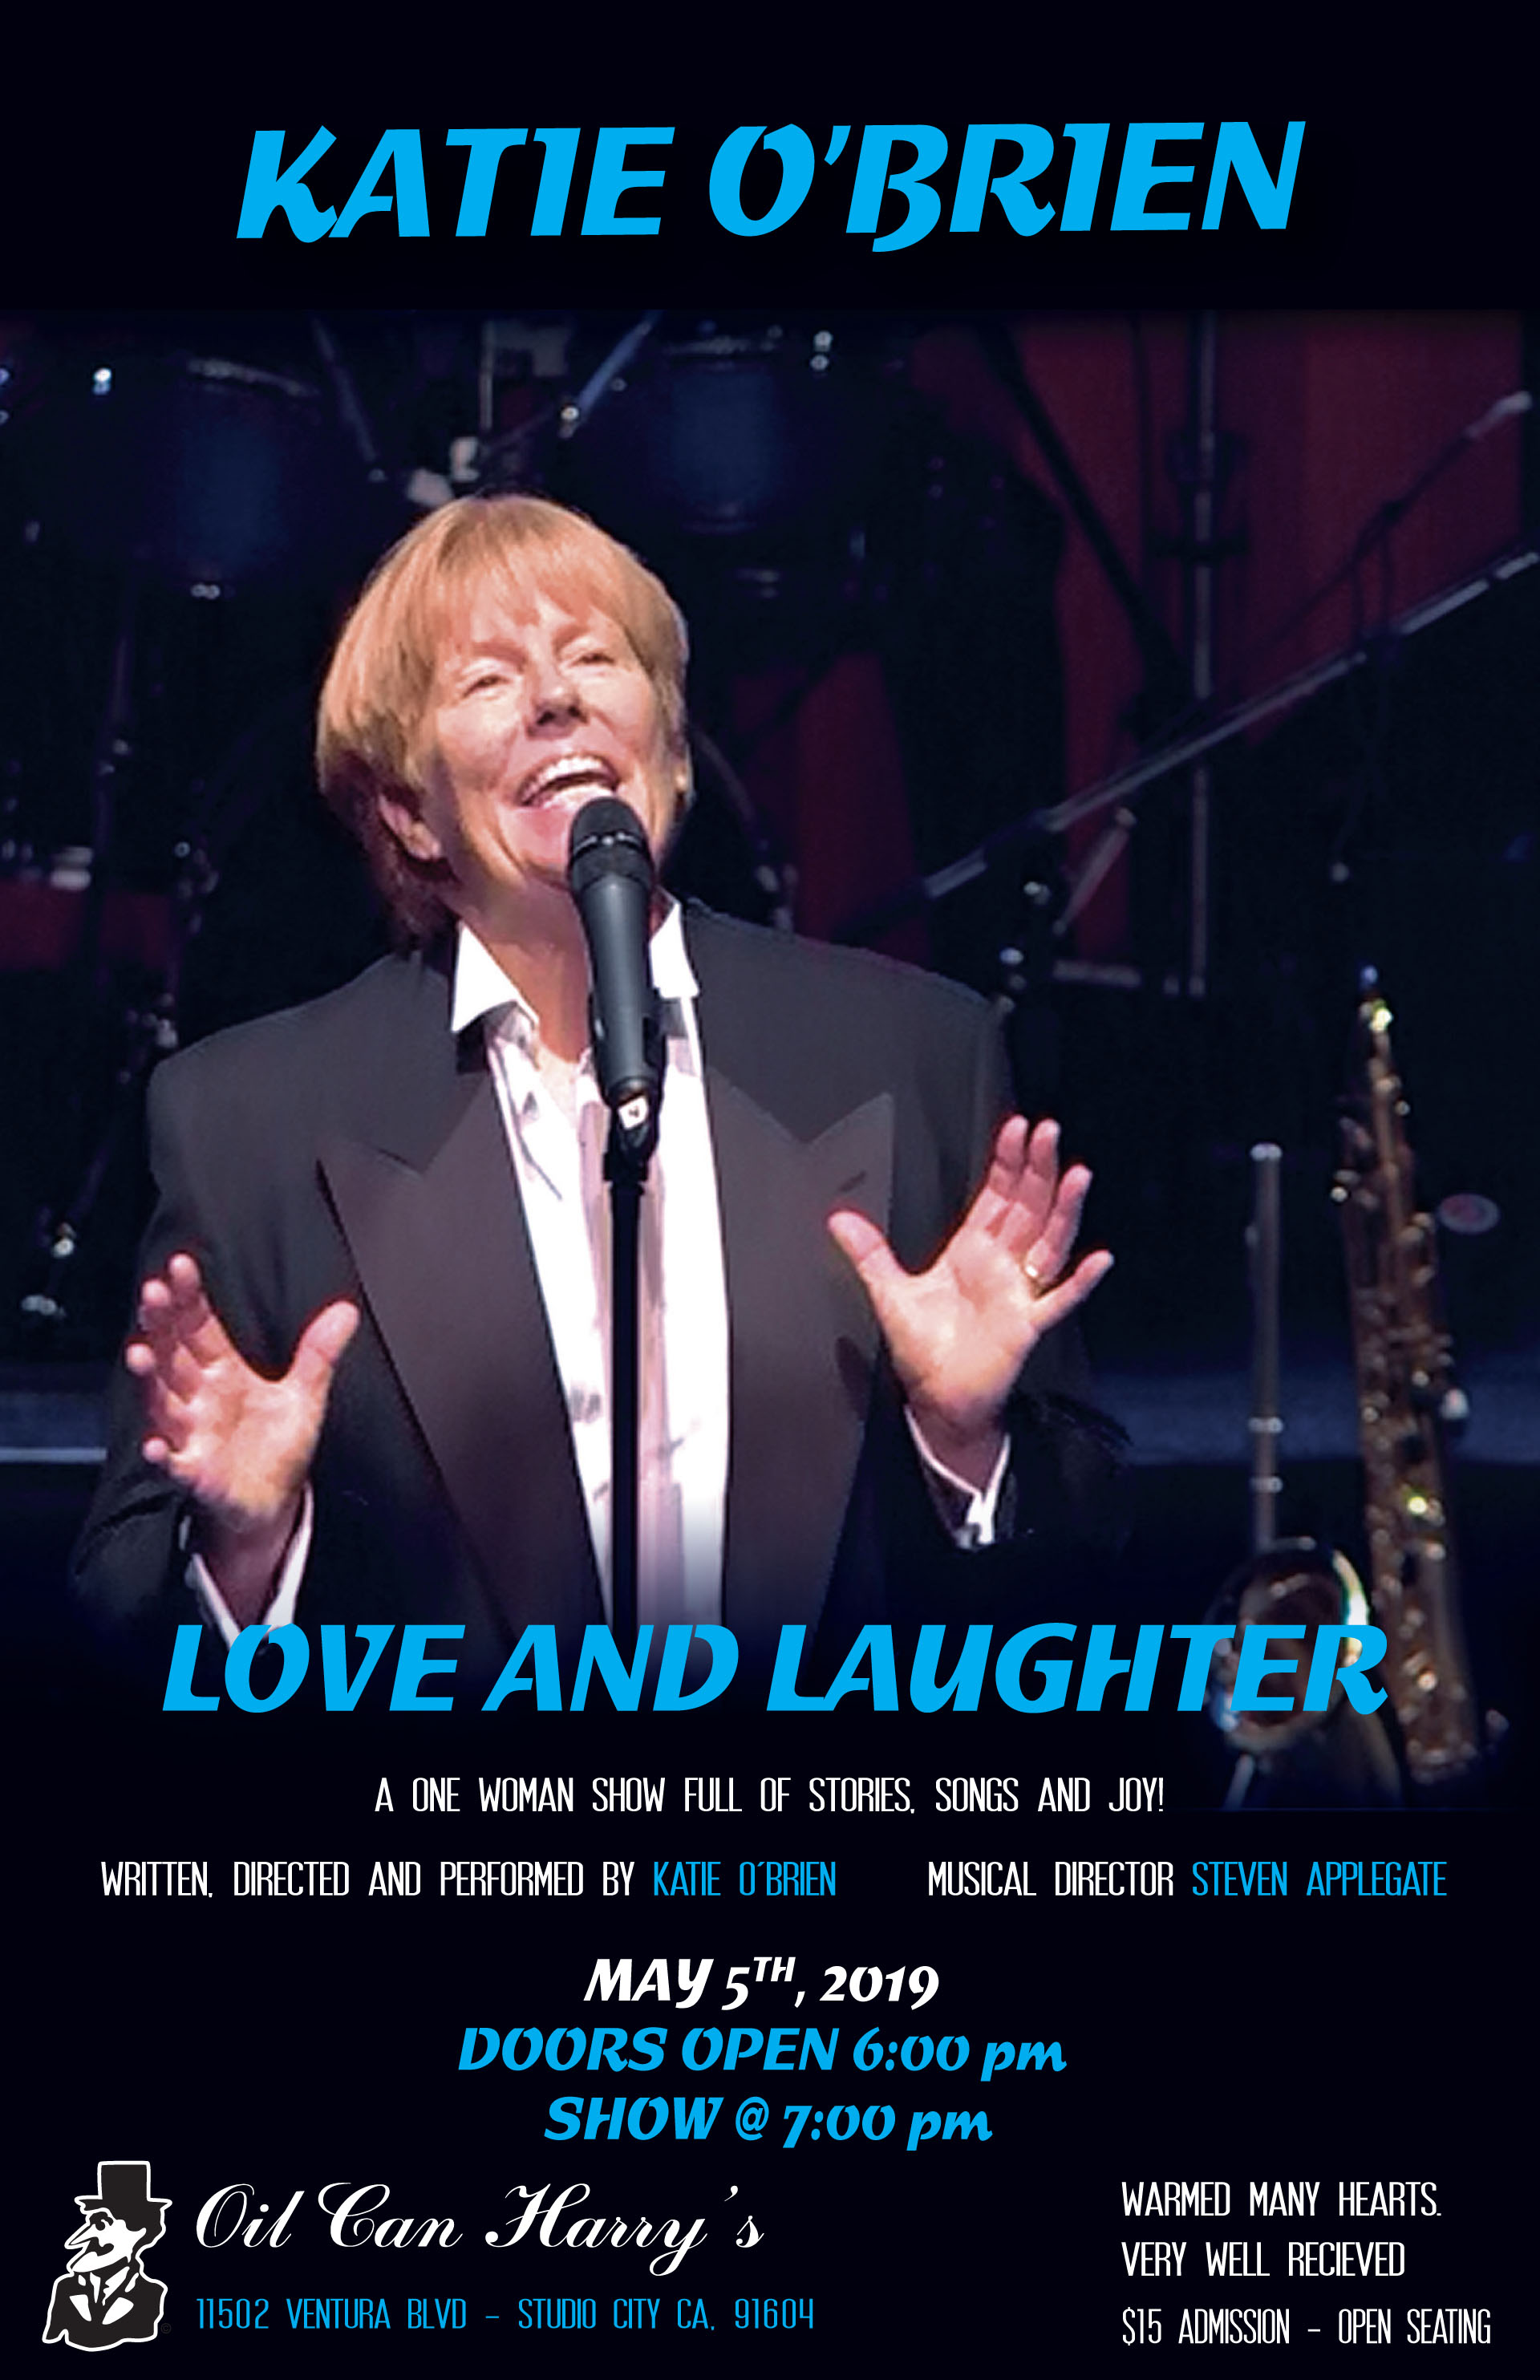 Katie O'Brien LOVE AND LAUGHTER at Oil Can Harry's: Sunday, May 5, 2019! Doors Open at 6:00 PM, and the Show Starts at 7:00 PM! $15 Admission - Open Seating